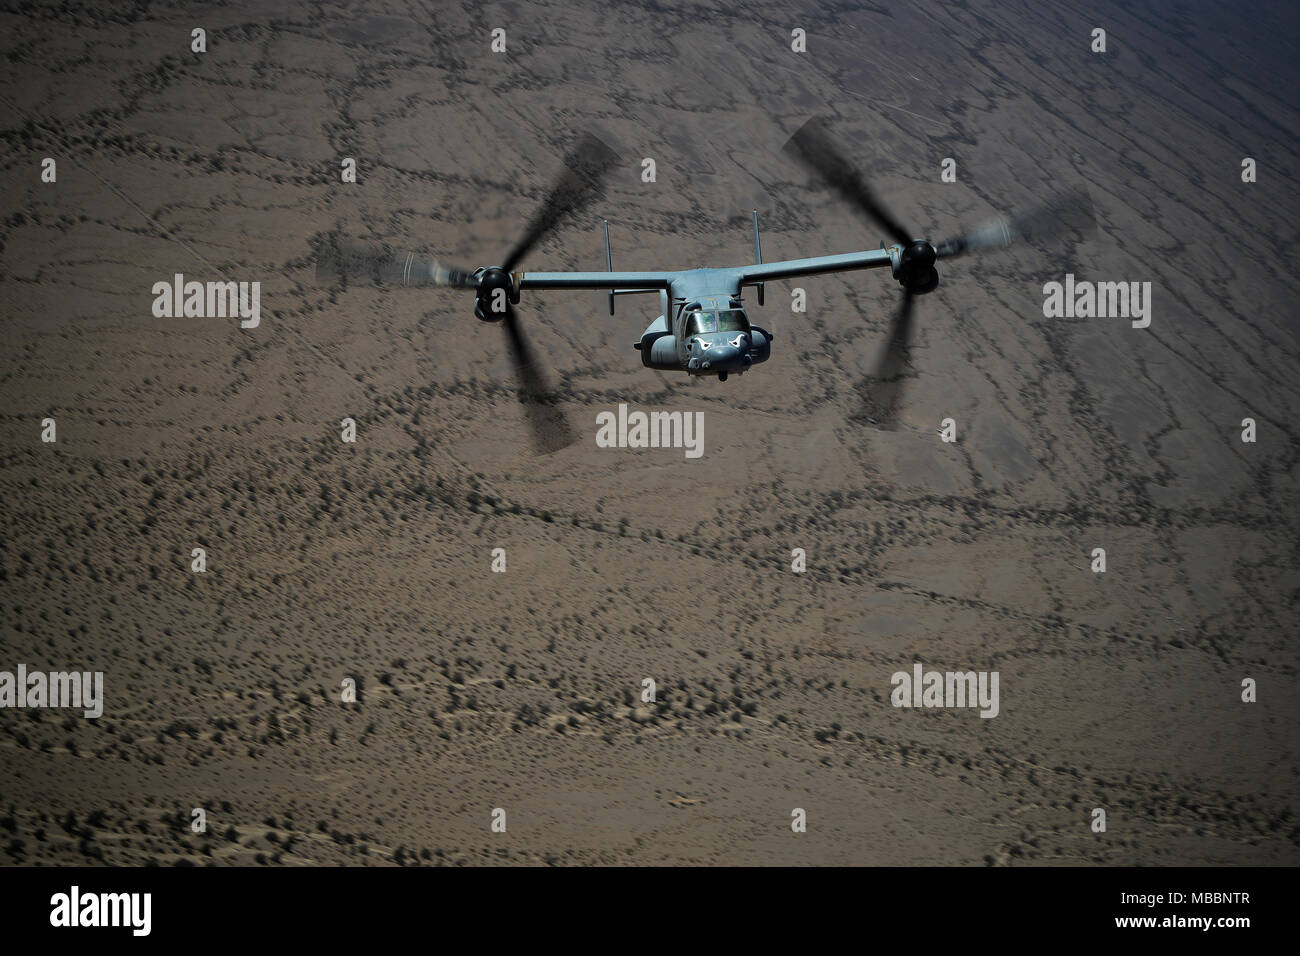 A MV-22 Osprey with Marine Aviation Weapons and Tactics Squadron 1, participates in day tactic operations in support of Weapons and Tactics Instructor Course 2-18 at Marine Corps Air Station Yuma, Calif., April 7. WTI is a seven-week training event hosted by MAWTS-1 cadre, which emphasizes operational integration of the six functions of Marine Corps aviation in support of a Marine Air Ground Task Force and provides standardized advanced tactical training and certification of unit instructor qualifications to support Marine Aviation Training and Readiness and assists in developing and employing Stock Photo